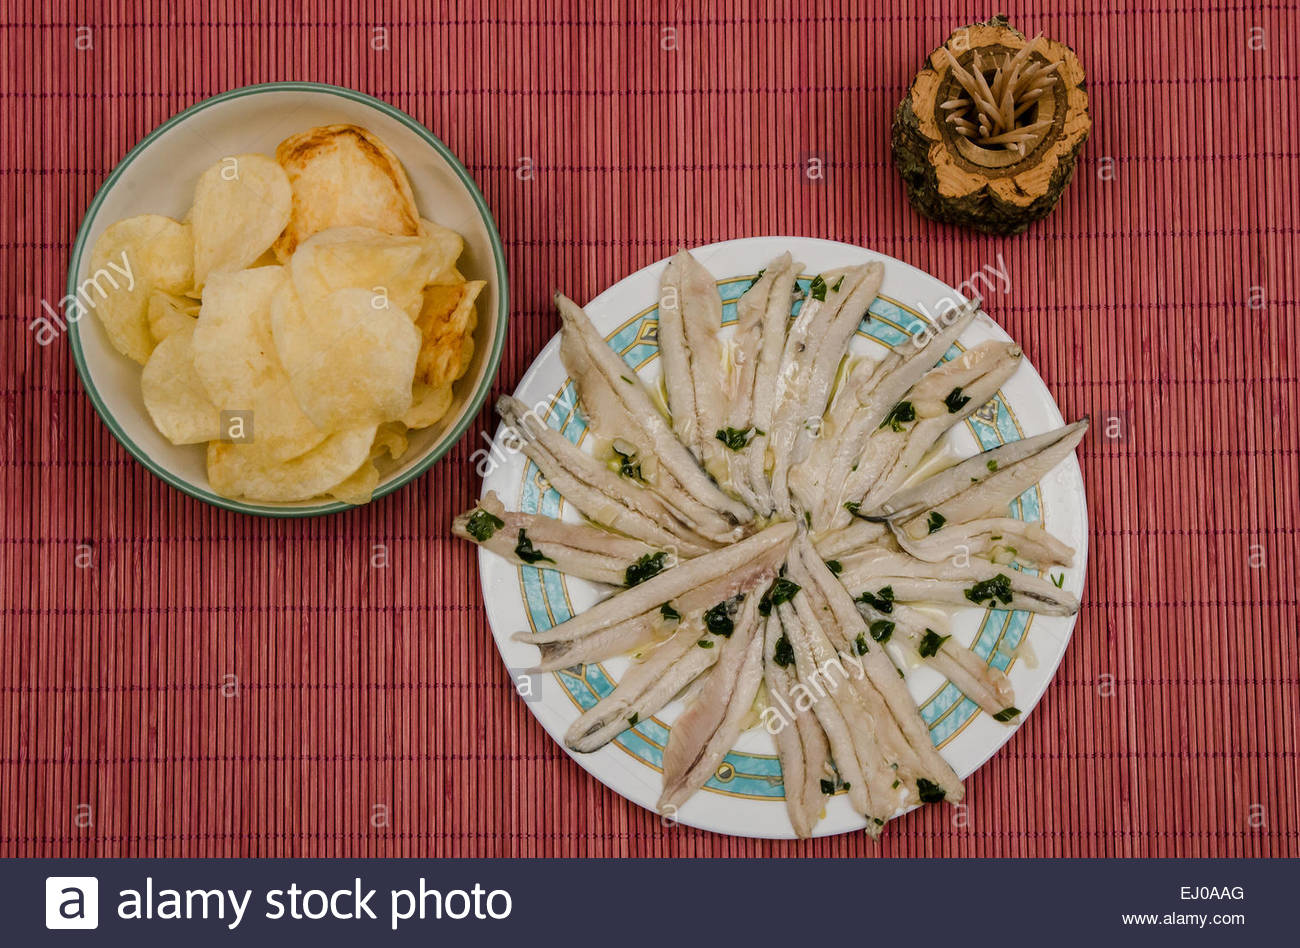 Anchovies in vinegar and fried potatoes. Boquerones en vinagre. Typical spanish appetizer - Stock Image